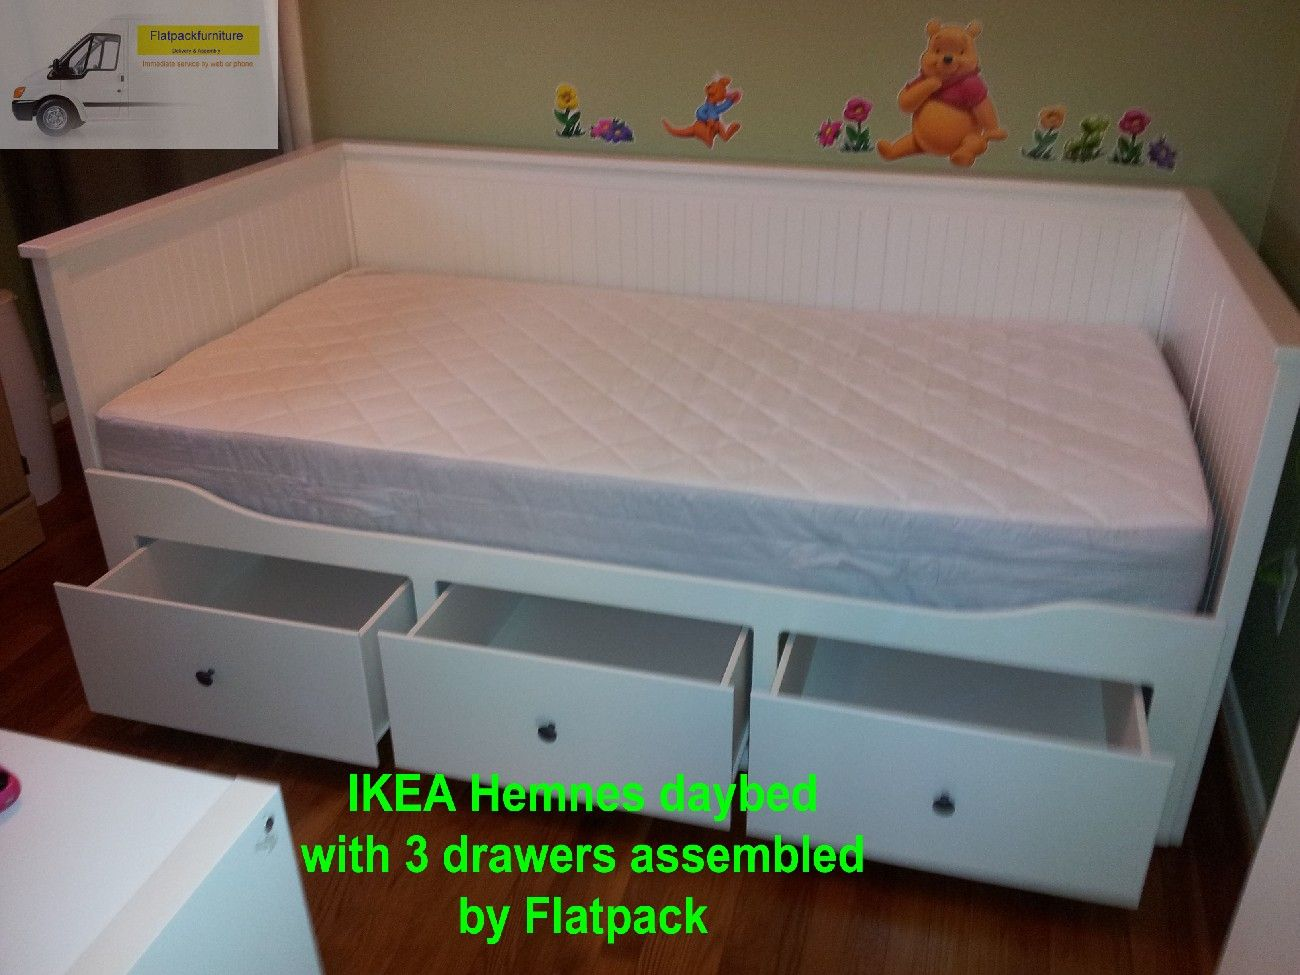 Ikea Hemnes Daybed Frame With 3 Drawers Article Number 303 493 29 Assembled By Flatpack Assemb Ikea Furniture Assembly Furniture Assembly Flat Pack Furniture